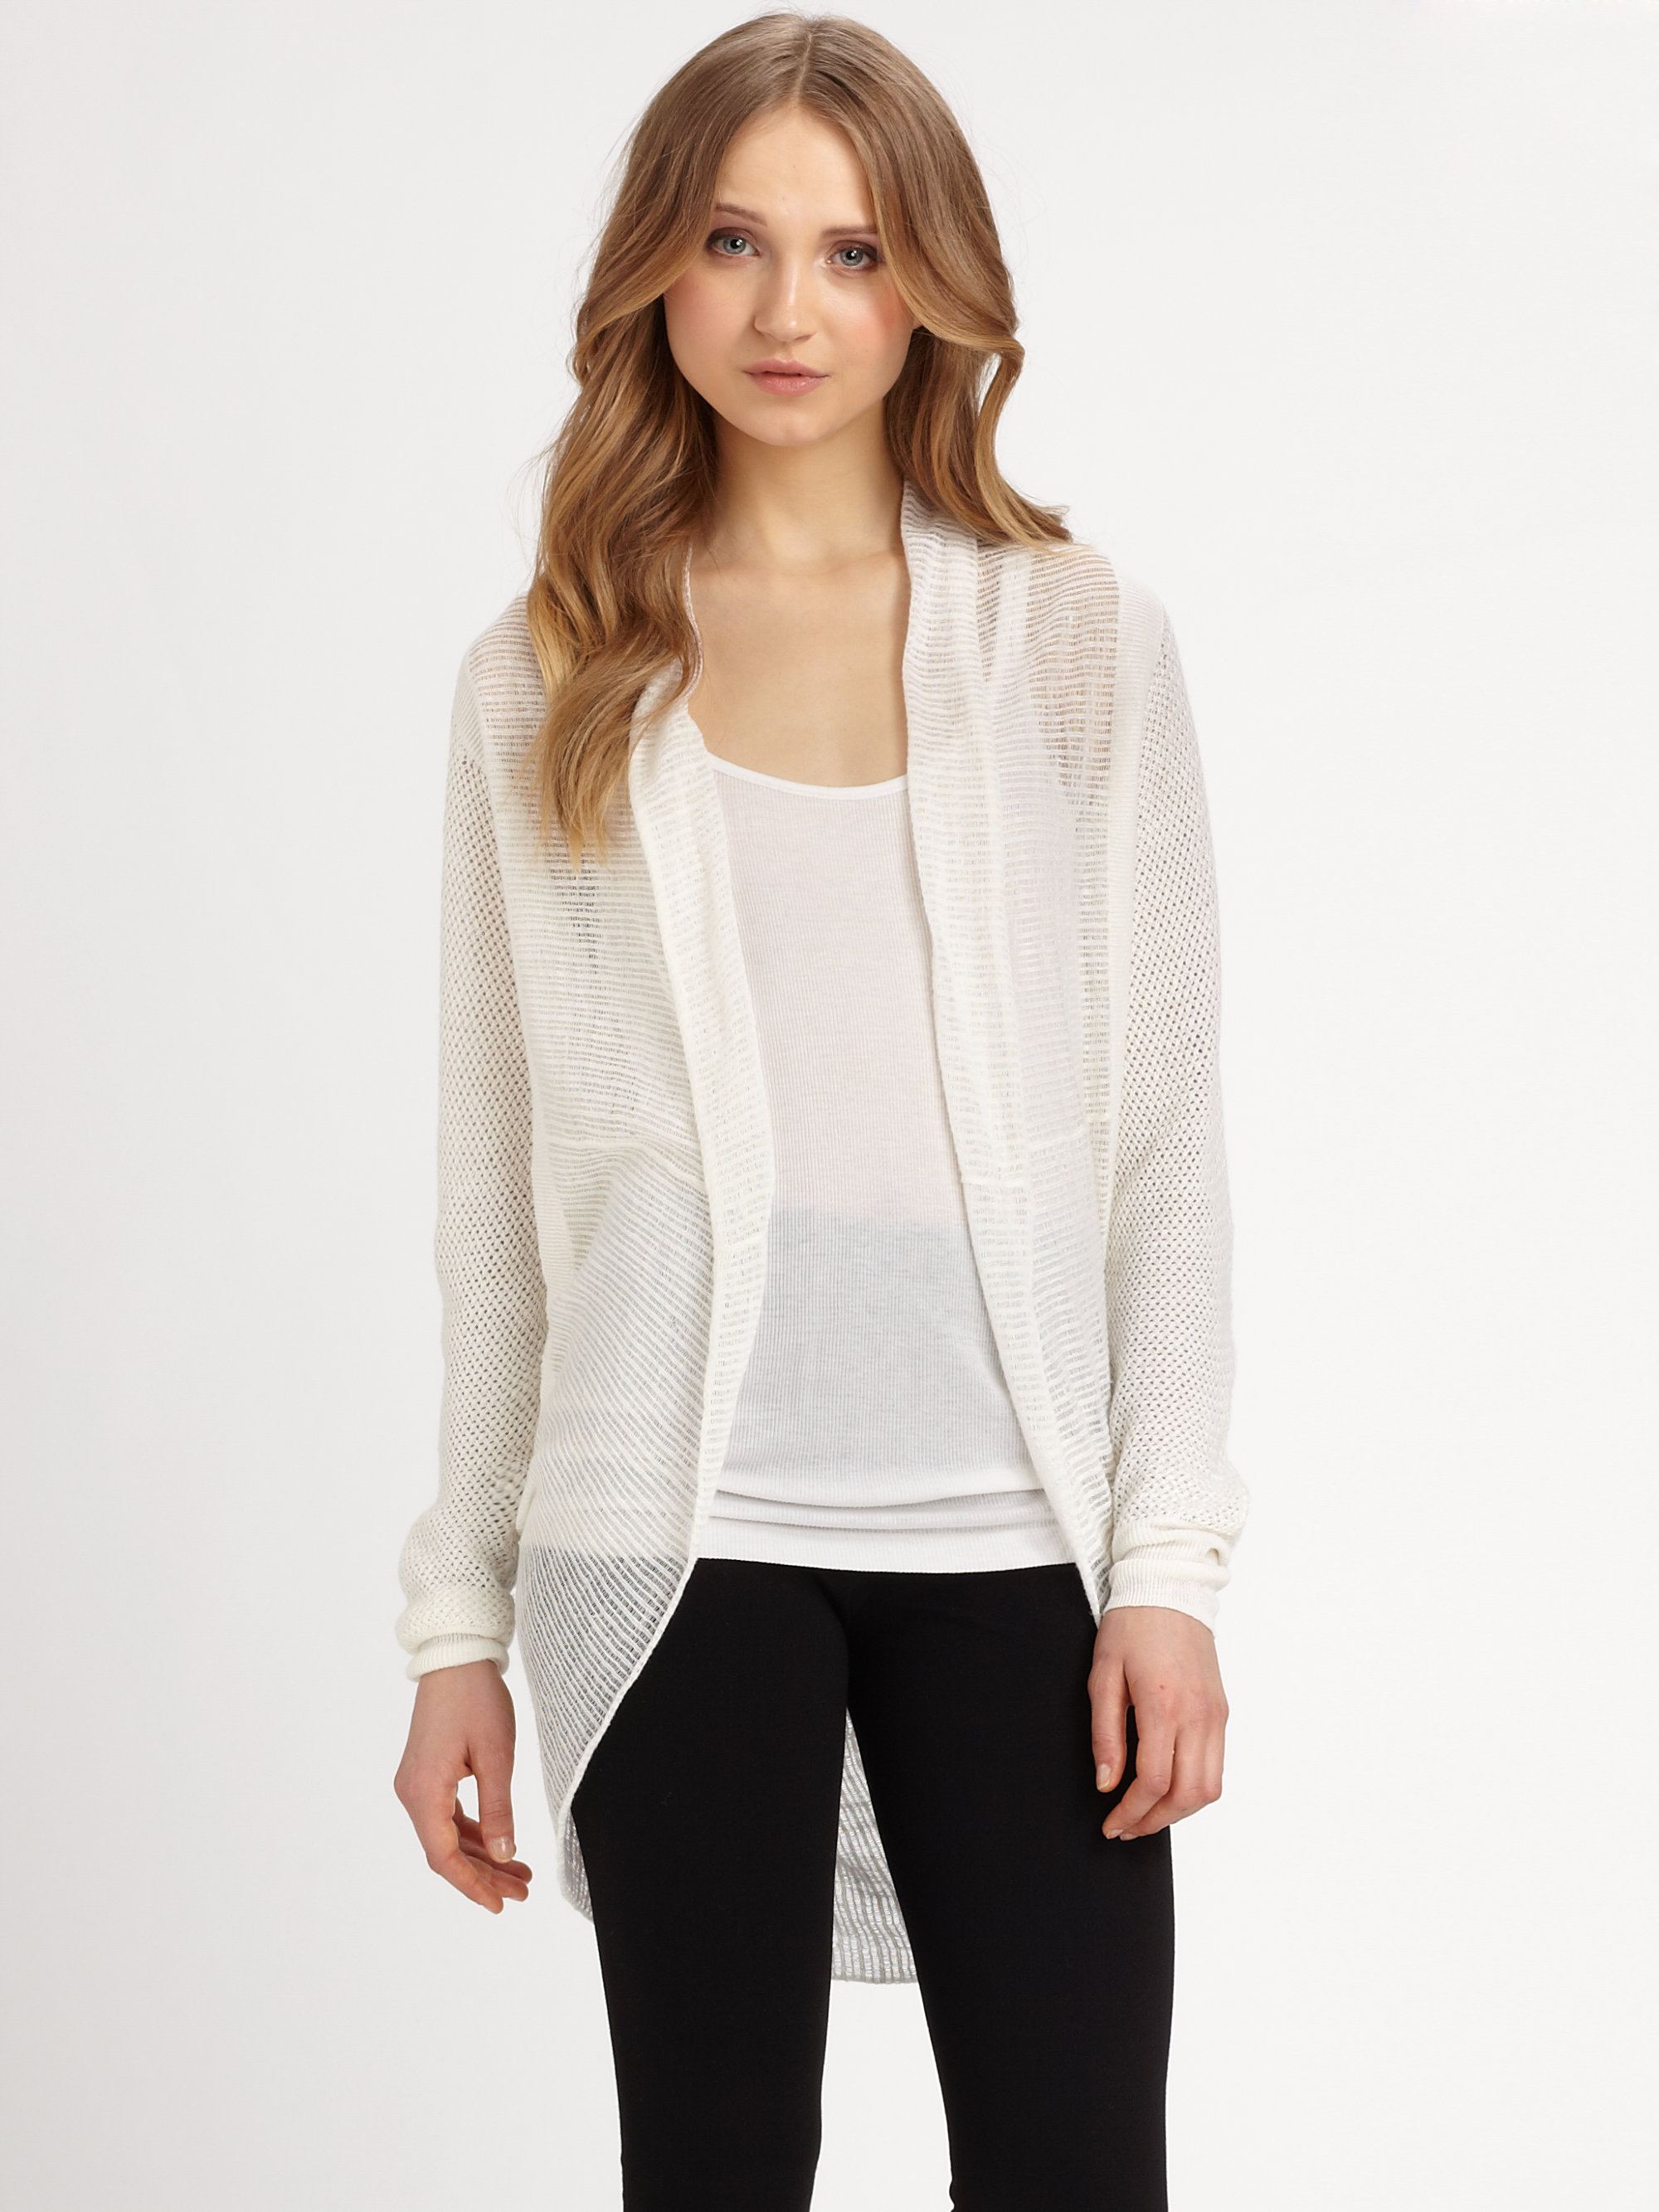 Dkny Linen Cardigan Sweater in White | Lyst